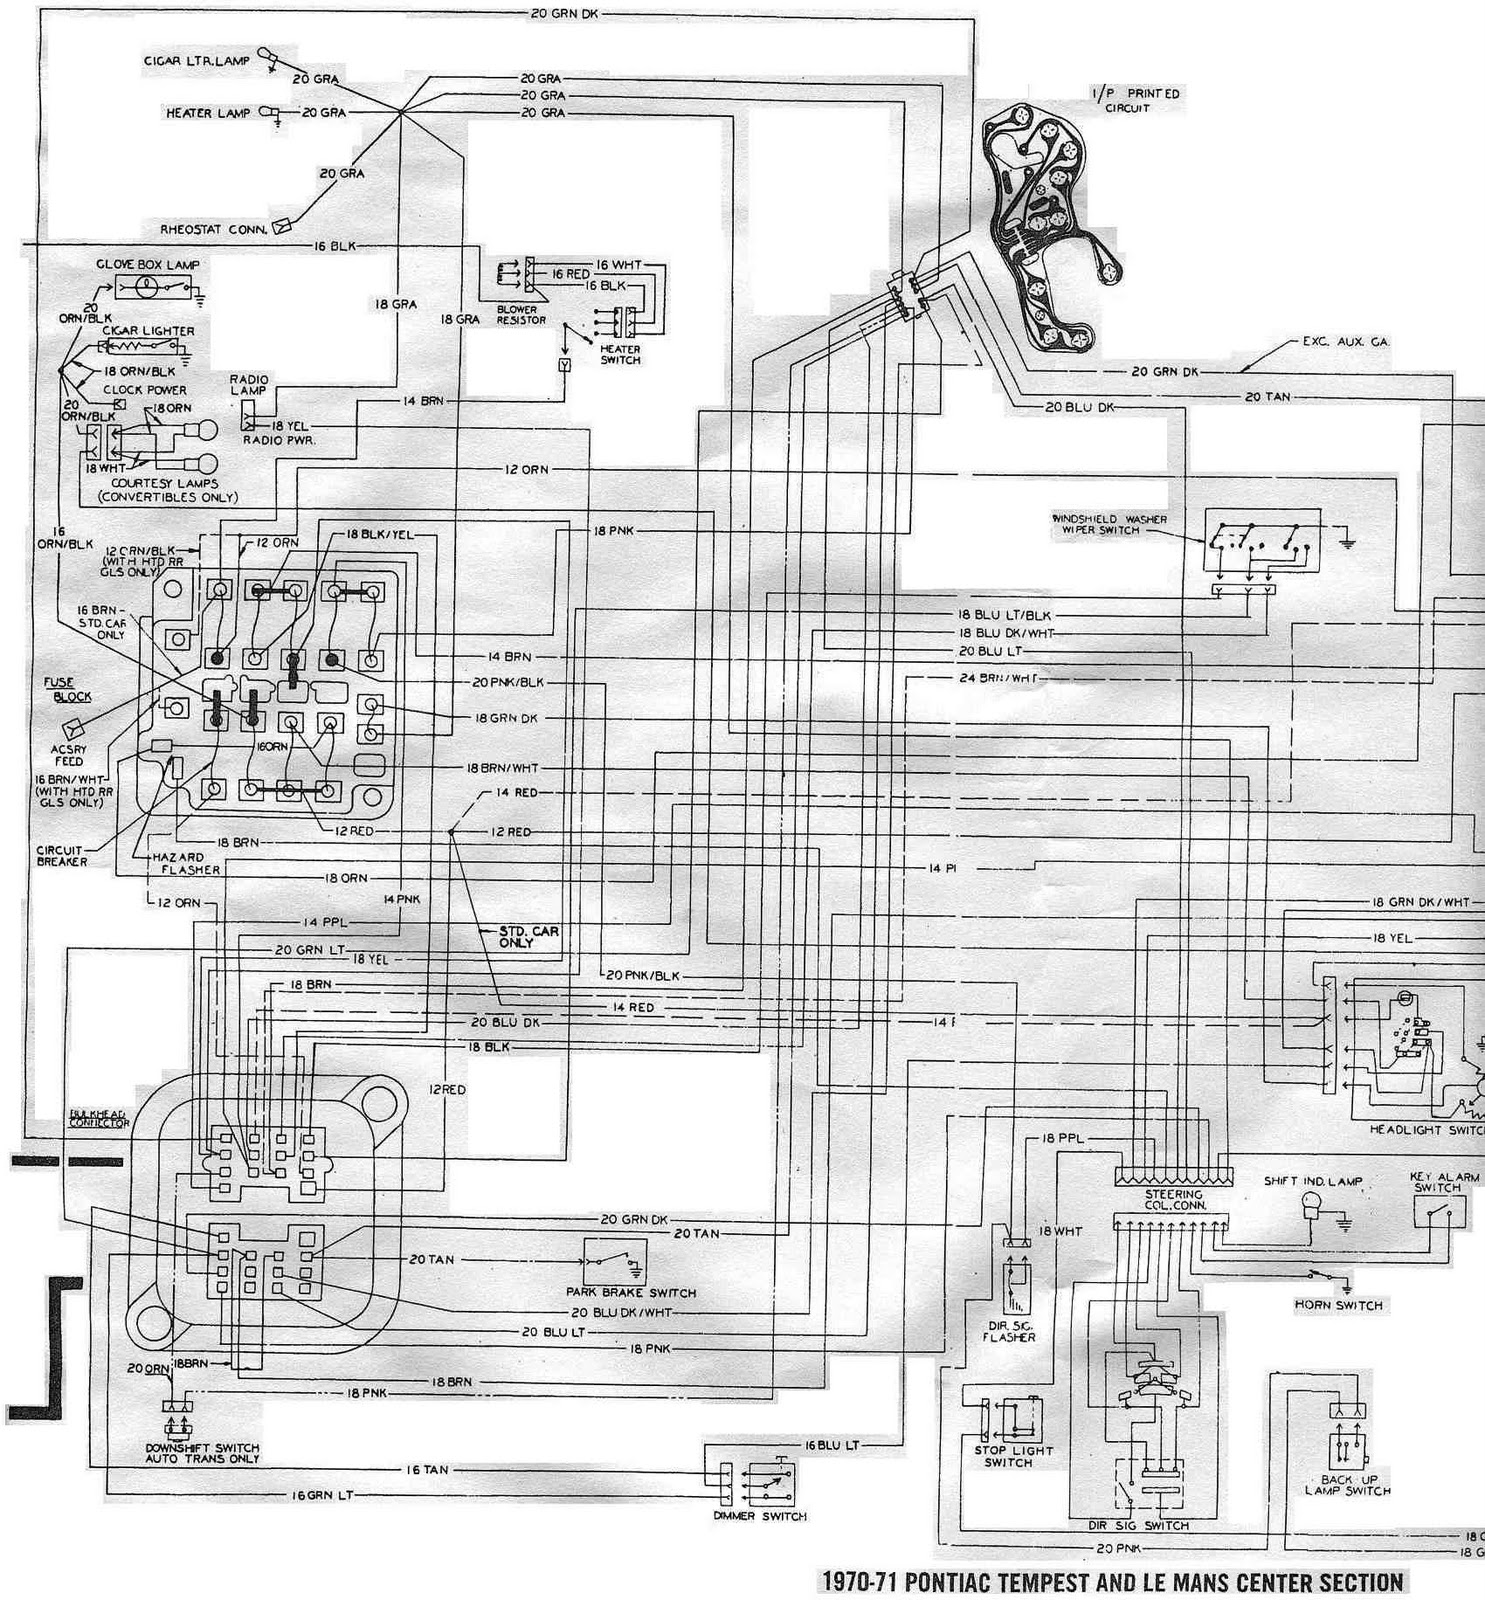 small resolution of 66 gto wiring diagram wiring diagram blogs 2004 pontiac gto wiring diagram 1966 pontiac gto engine wiring diagram